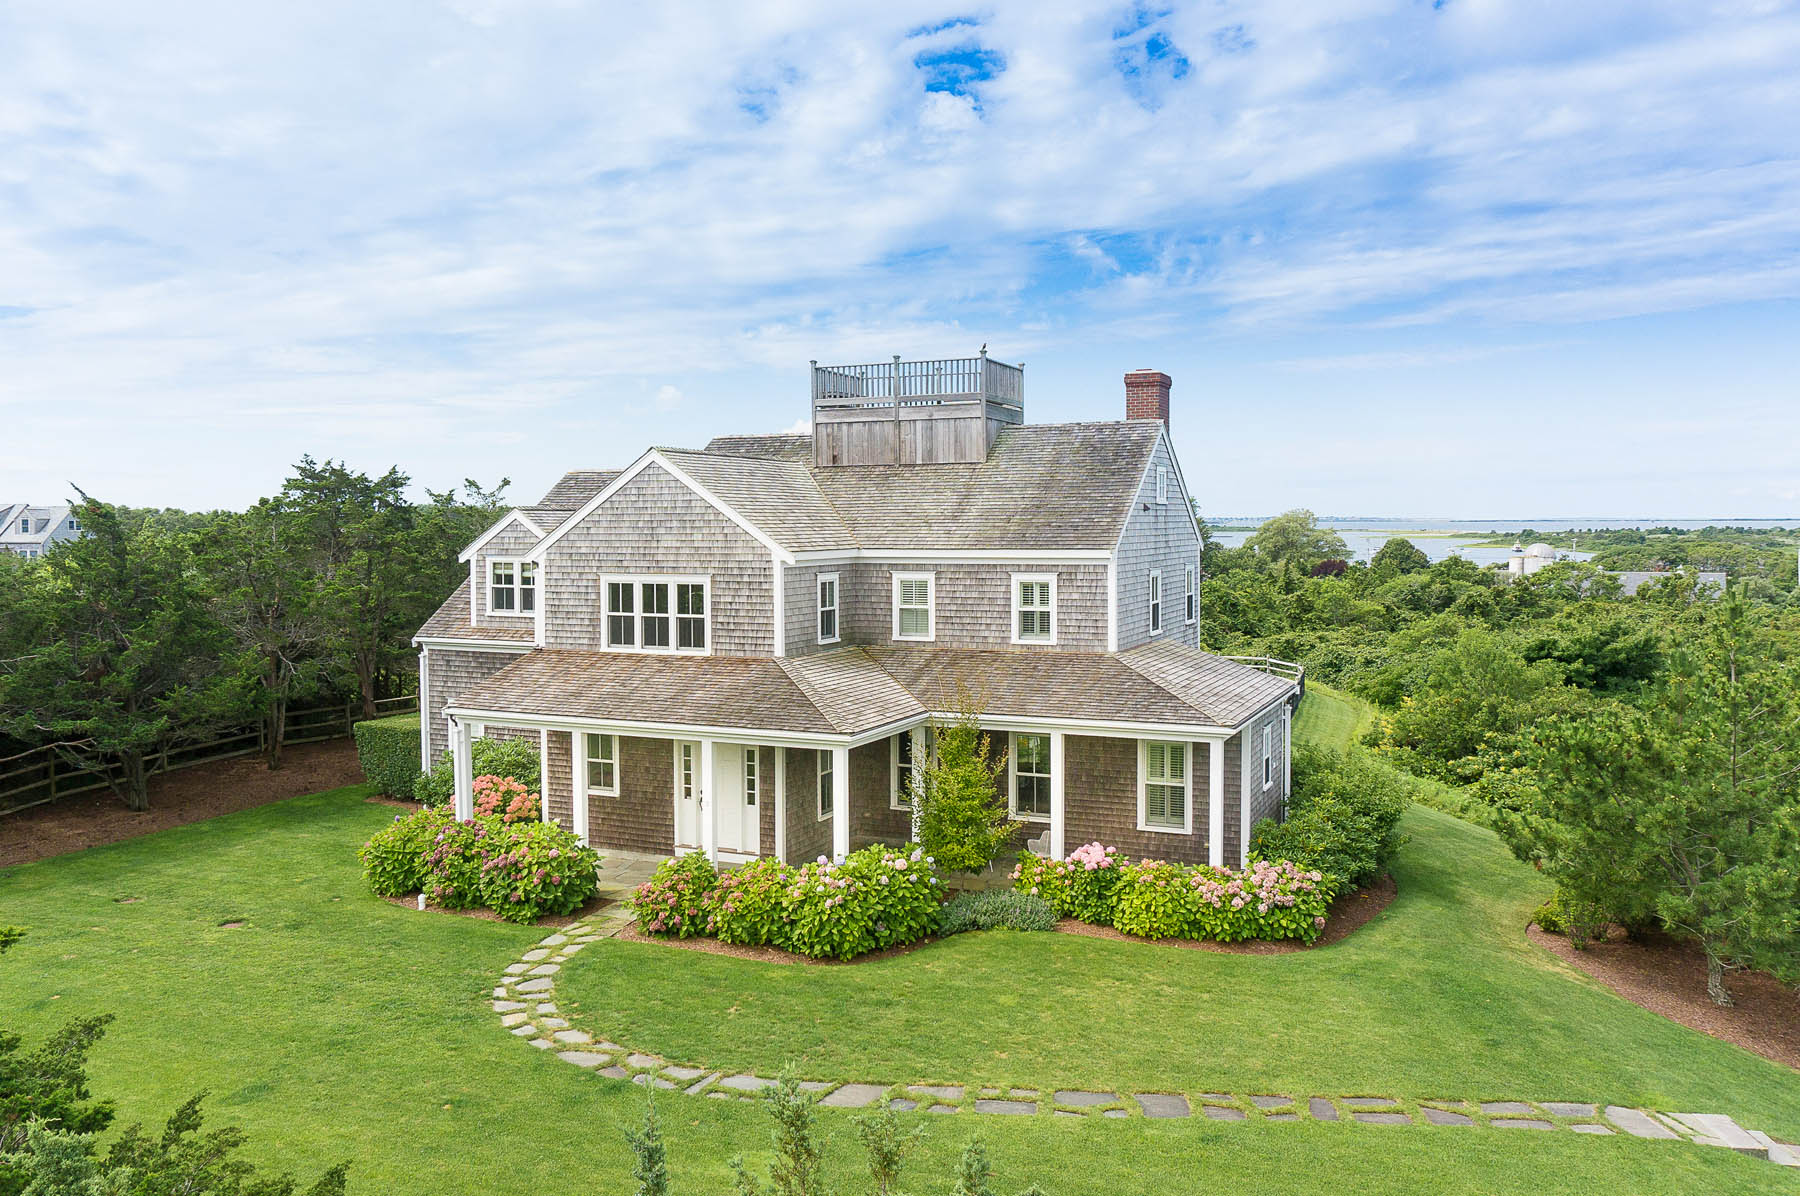 Villa per Vendita alle ore Expansive Water Views - 6 Bedrooms and 6 Baths 5 Eat Fire Spring Road Nantucket, Massachusetts, 02554 Stati Uniti